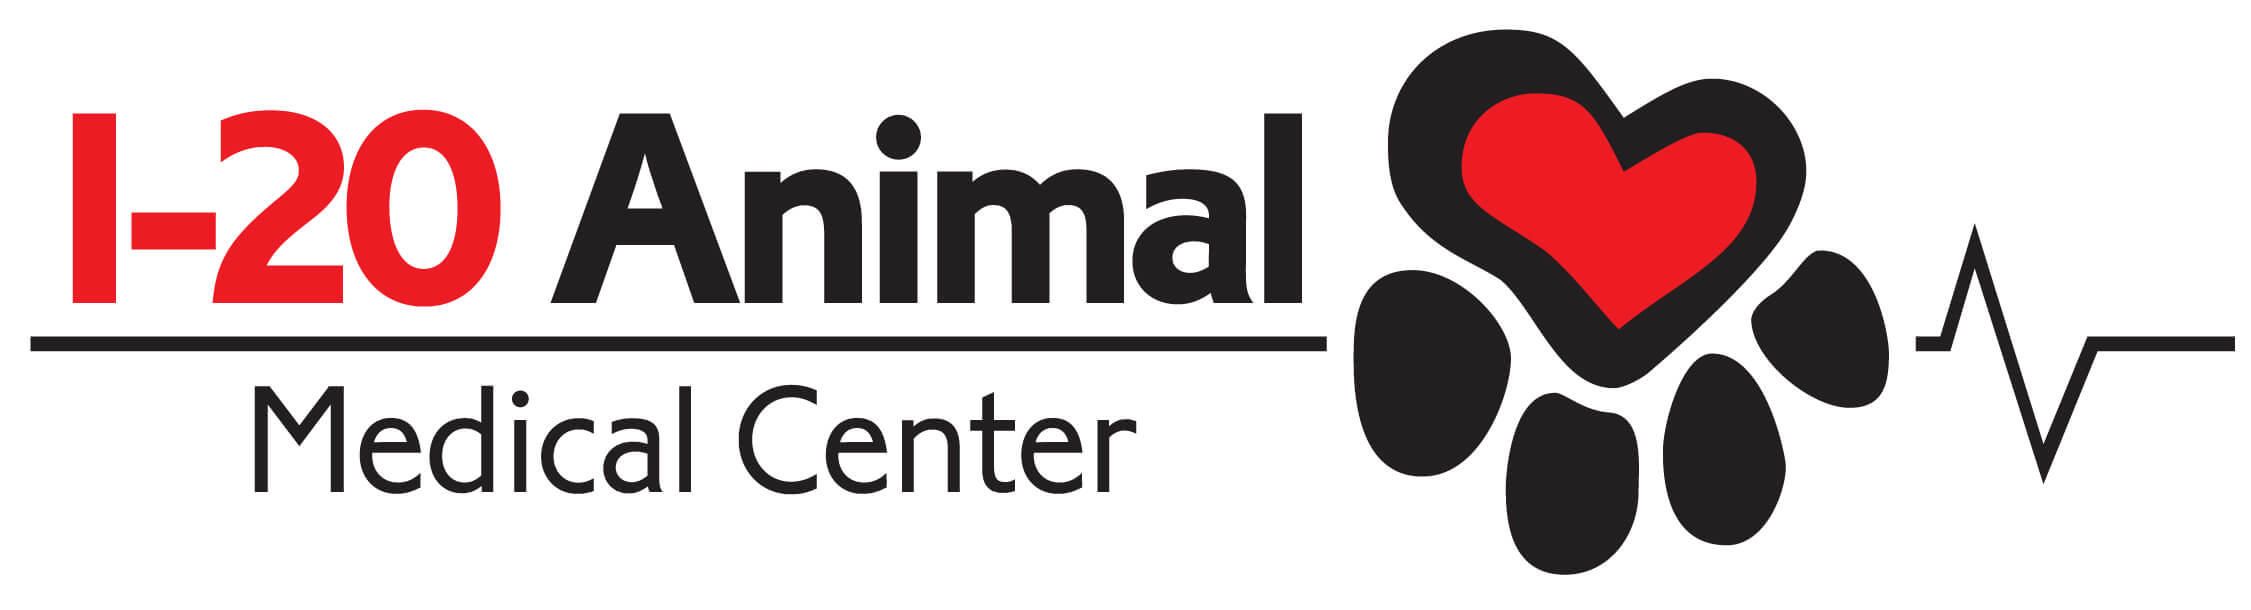 Watch the job video below to learn more about the career opening Video Not Found at I 20 Animal Medical Center in